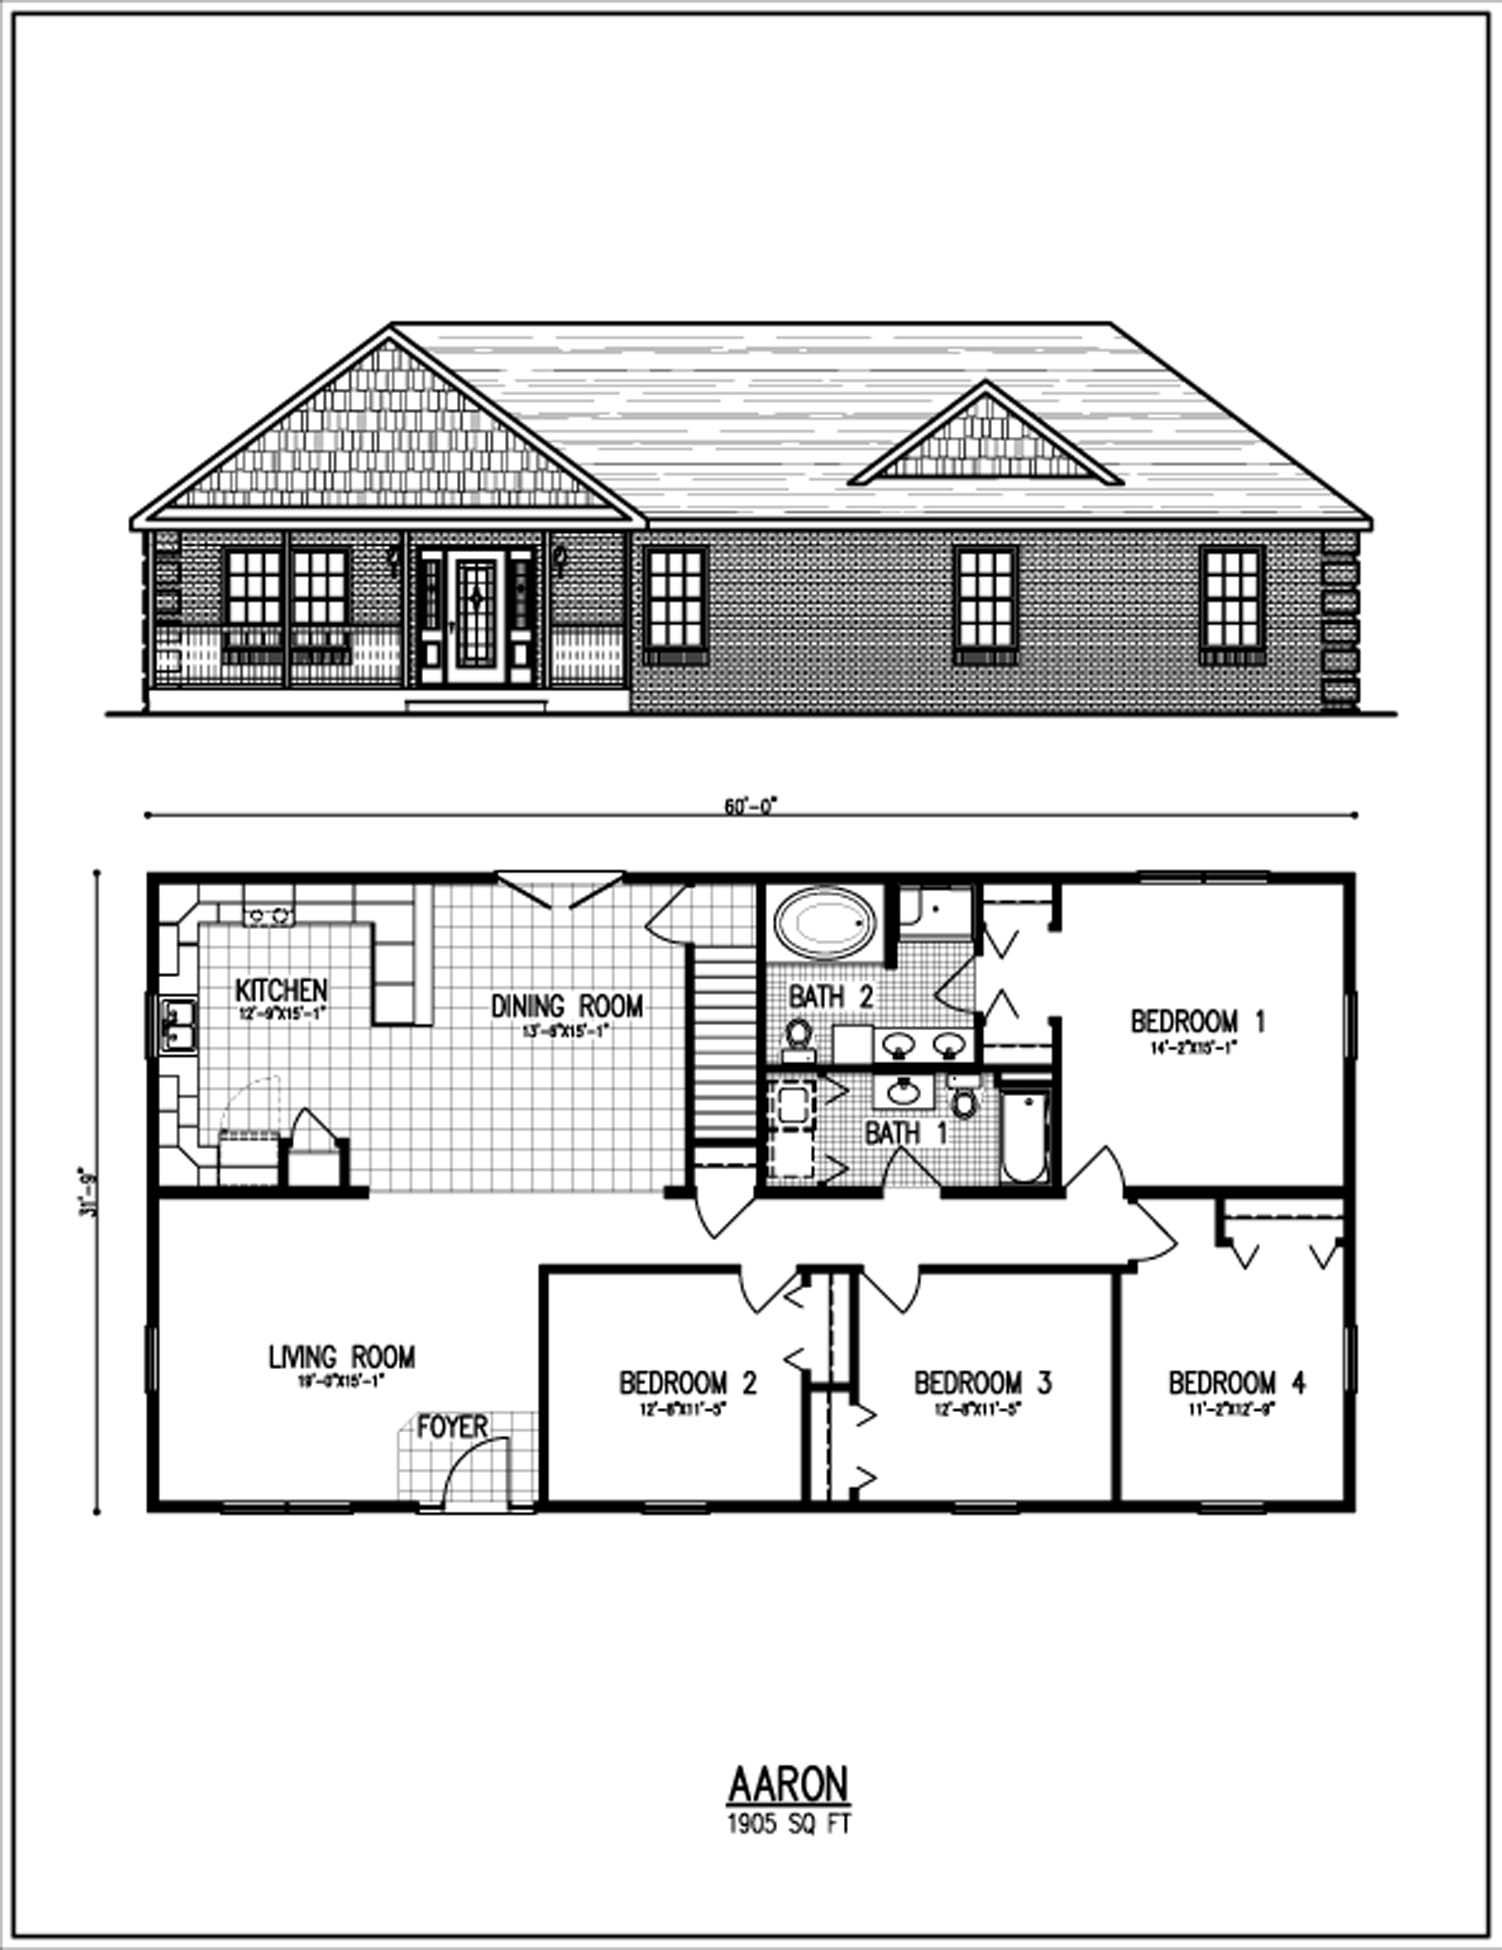 All american homes floorplan center staffordcape for Ranch floor plans